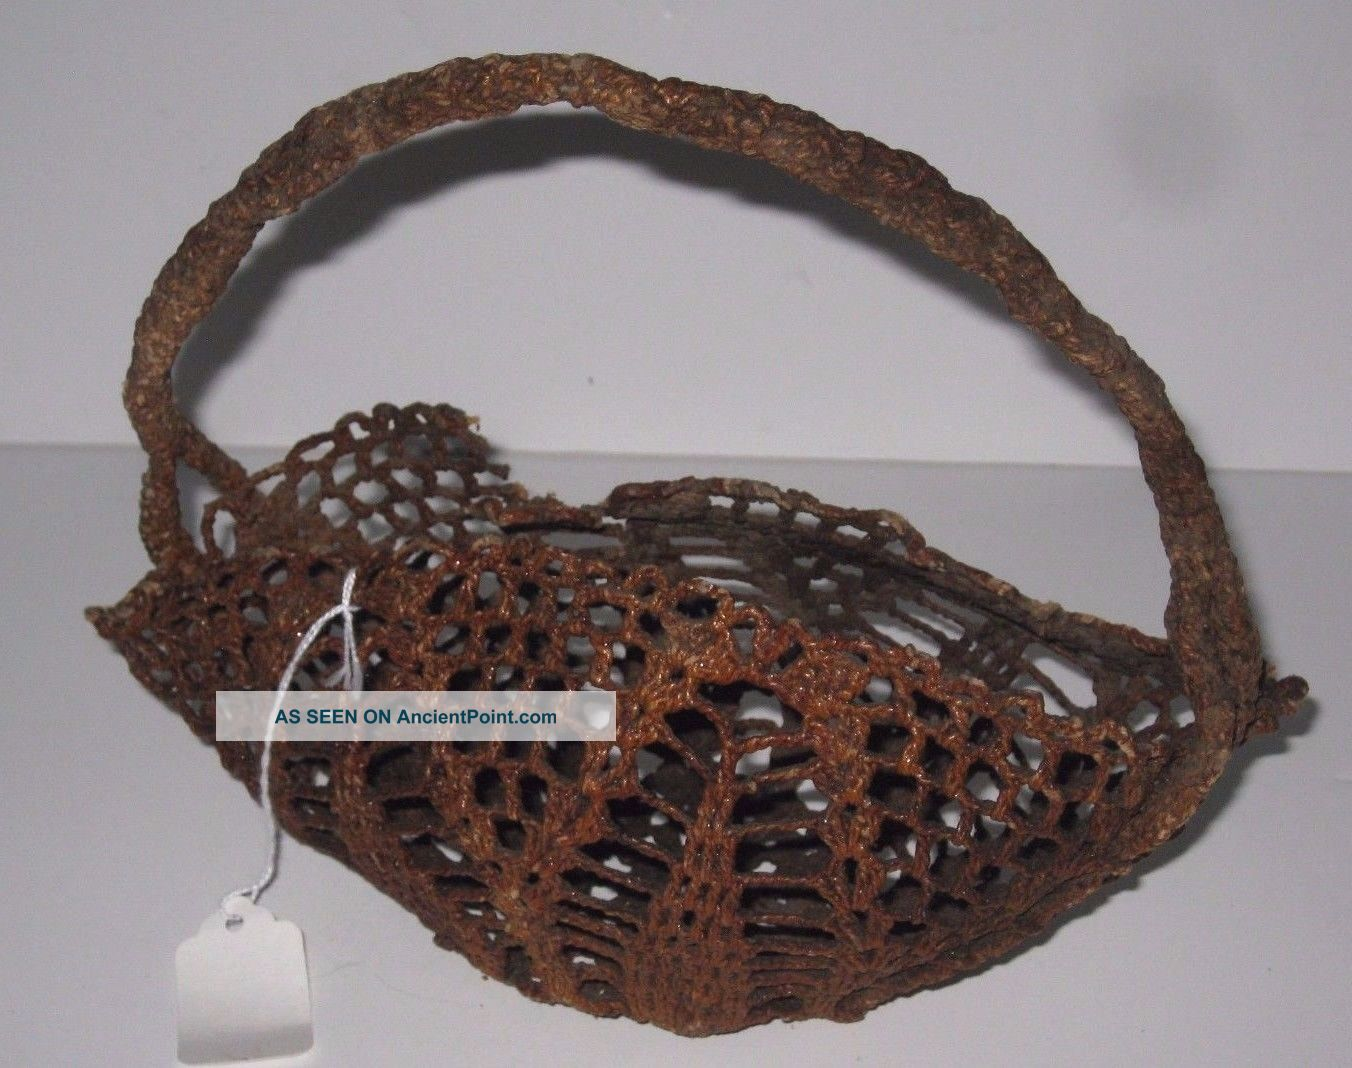 Antique Sailor Made Rope - Work Macrame Oblong Basket Knotted Twine Varnished Other Maritime Antiques photo